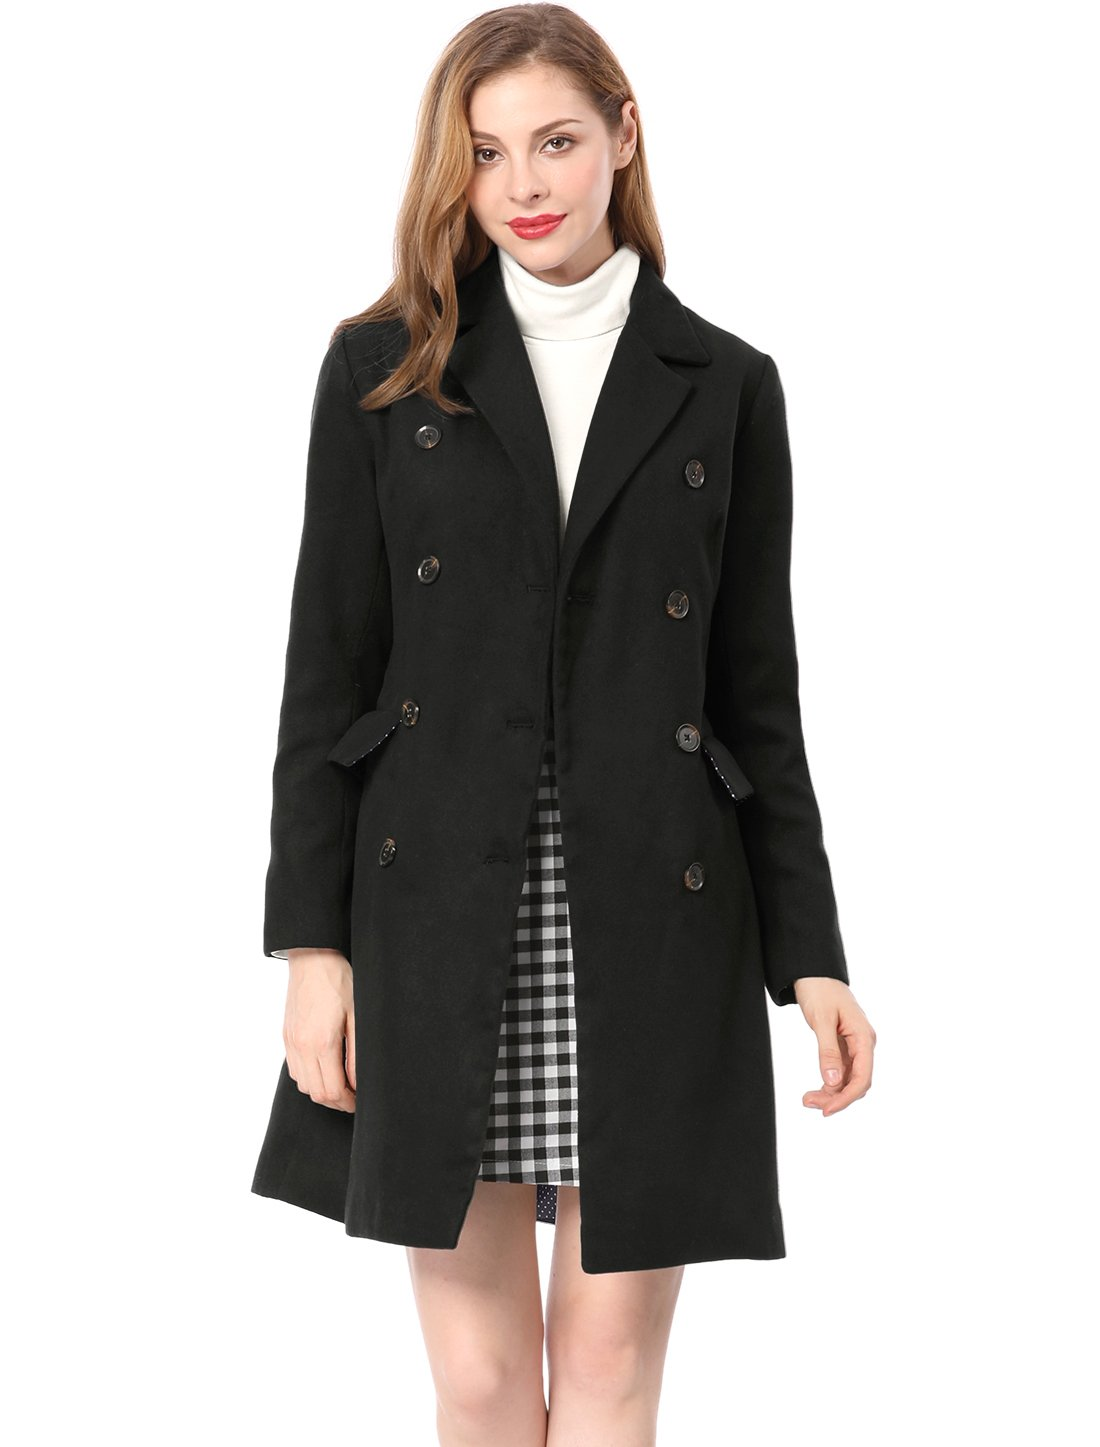 Allegra K Women's Notched Lapel Double Breasted Trench Coat L Black